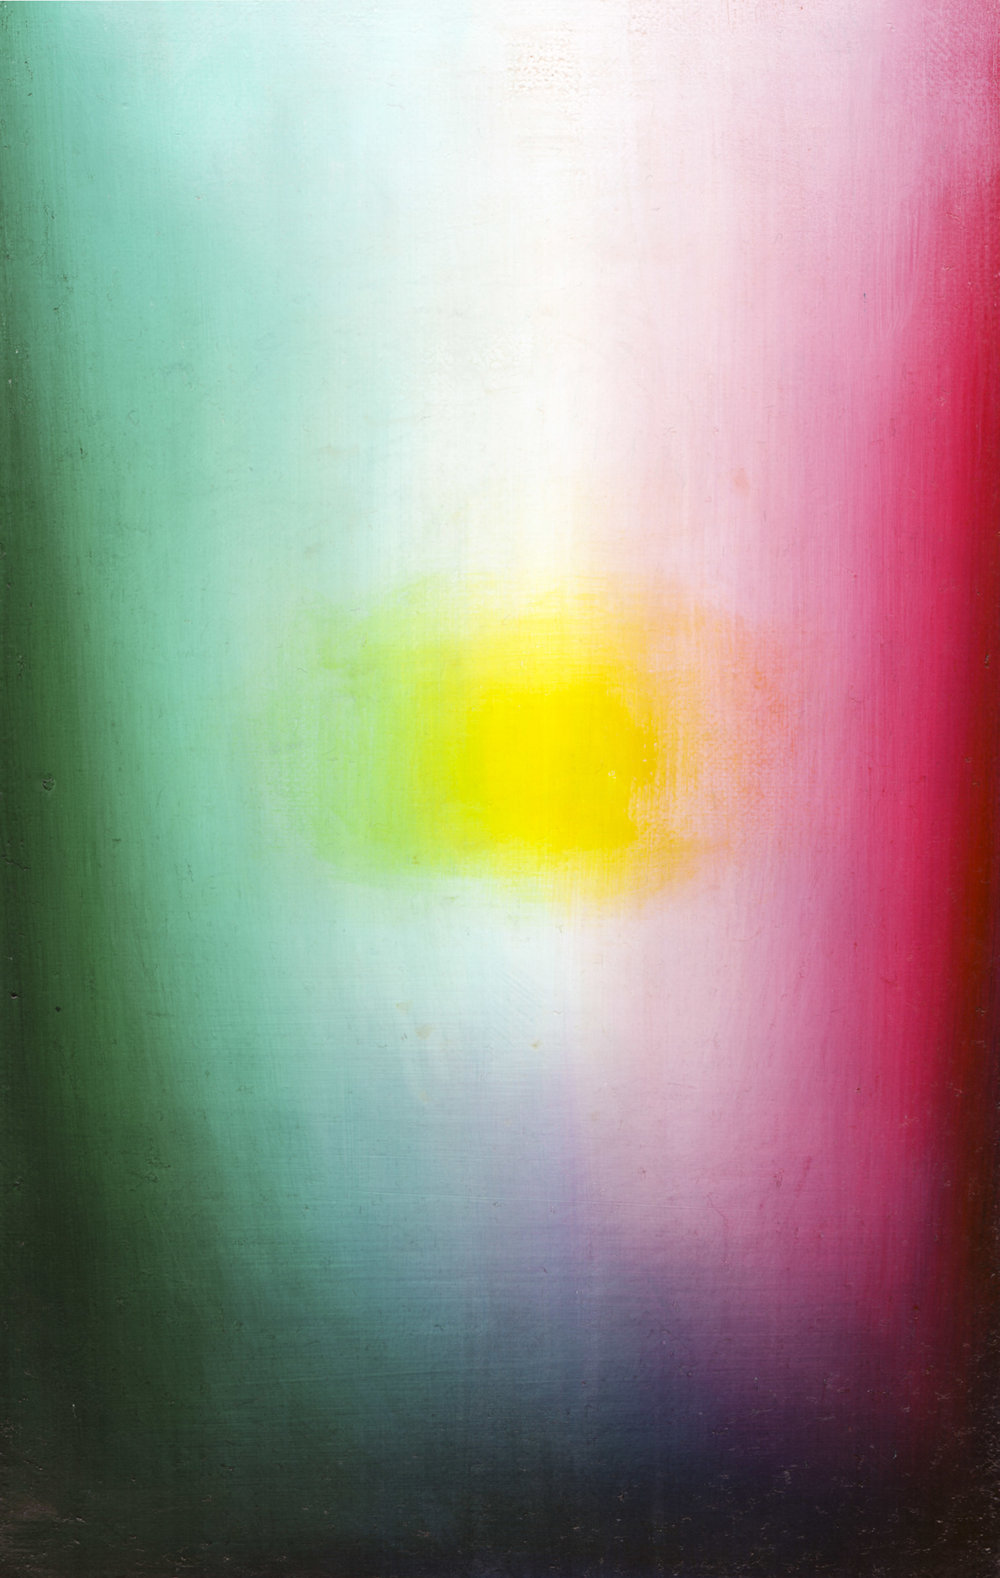 光2號 Light 2  30 x 19 cm 油彩畫布 Oil on Canvas  2017